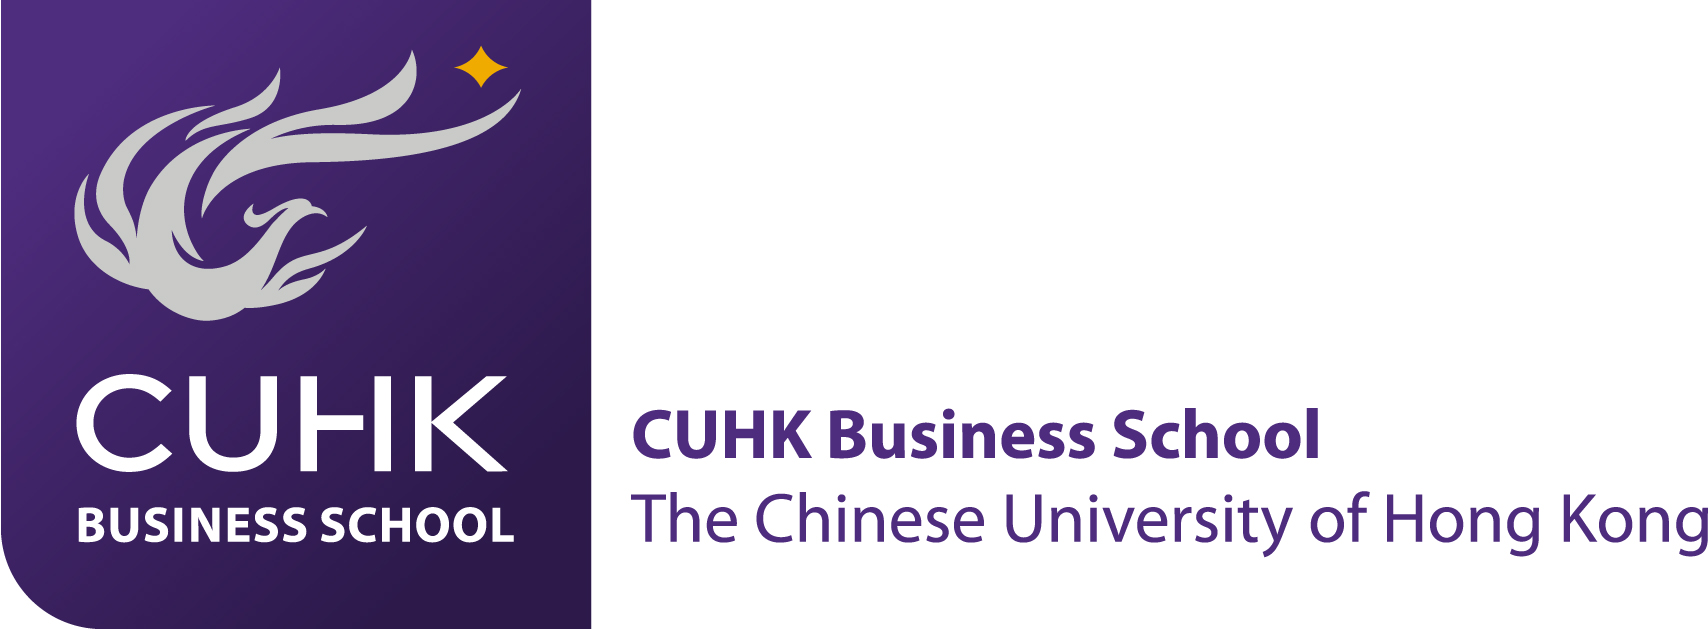 CUHK Business School Research Finds Individuals With Diverse Skills More Likely to Form Startups and Succeed as Entrepreneurs